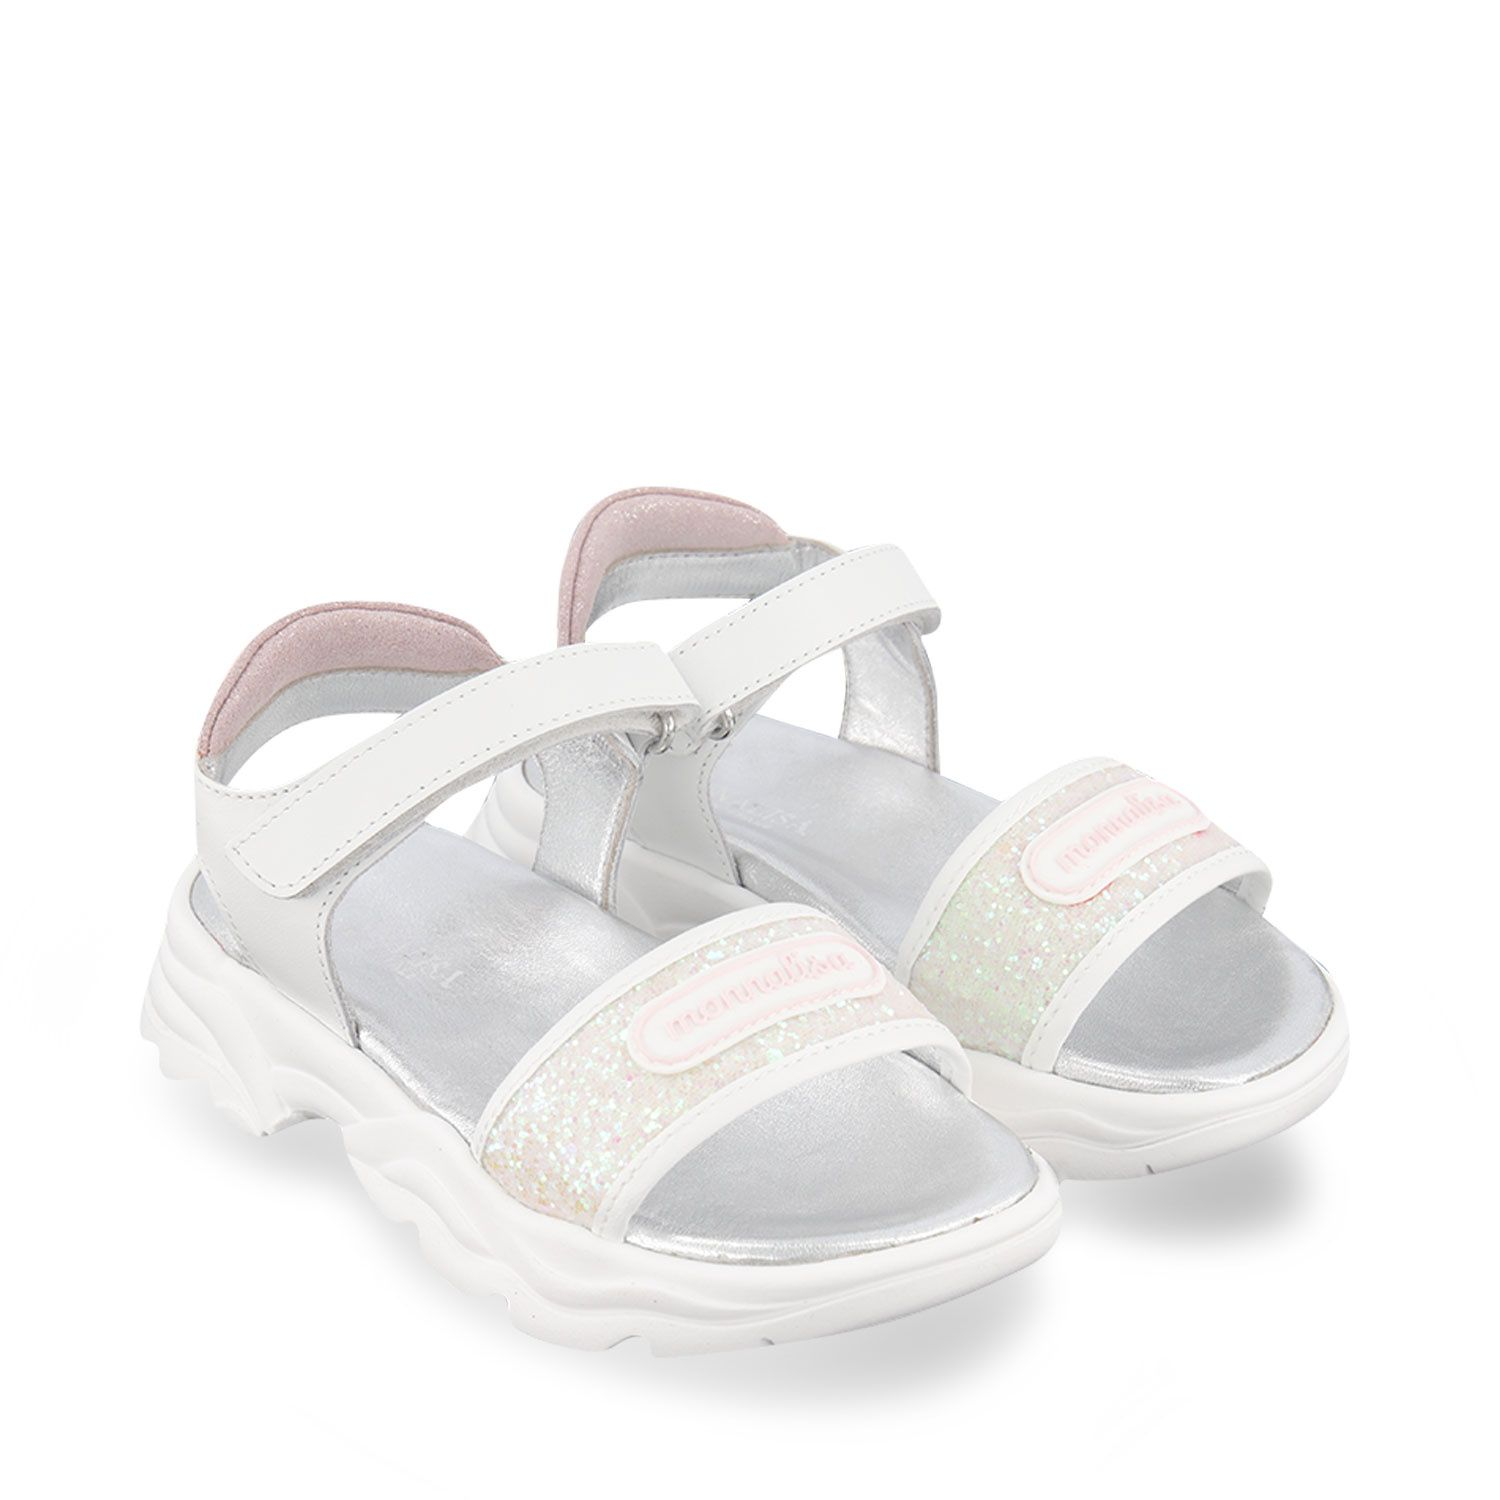 Picture of MonnaLisa 877006 kids sandals white